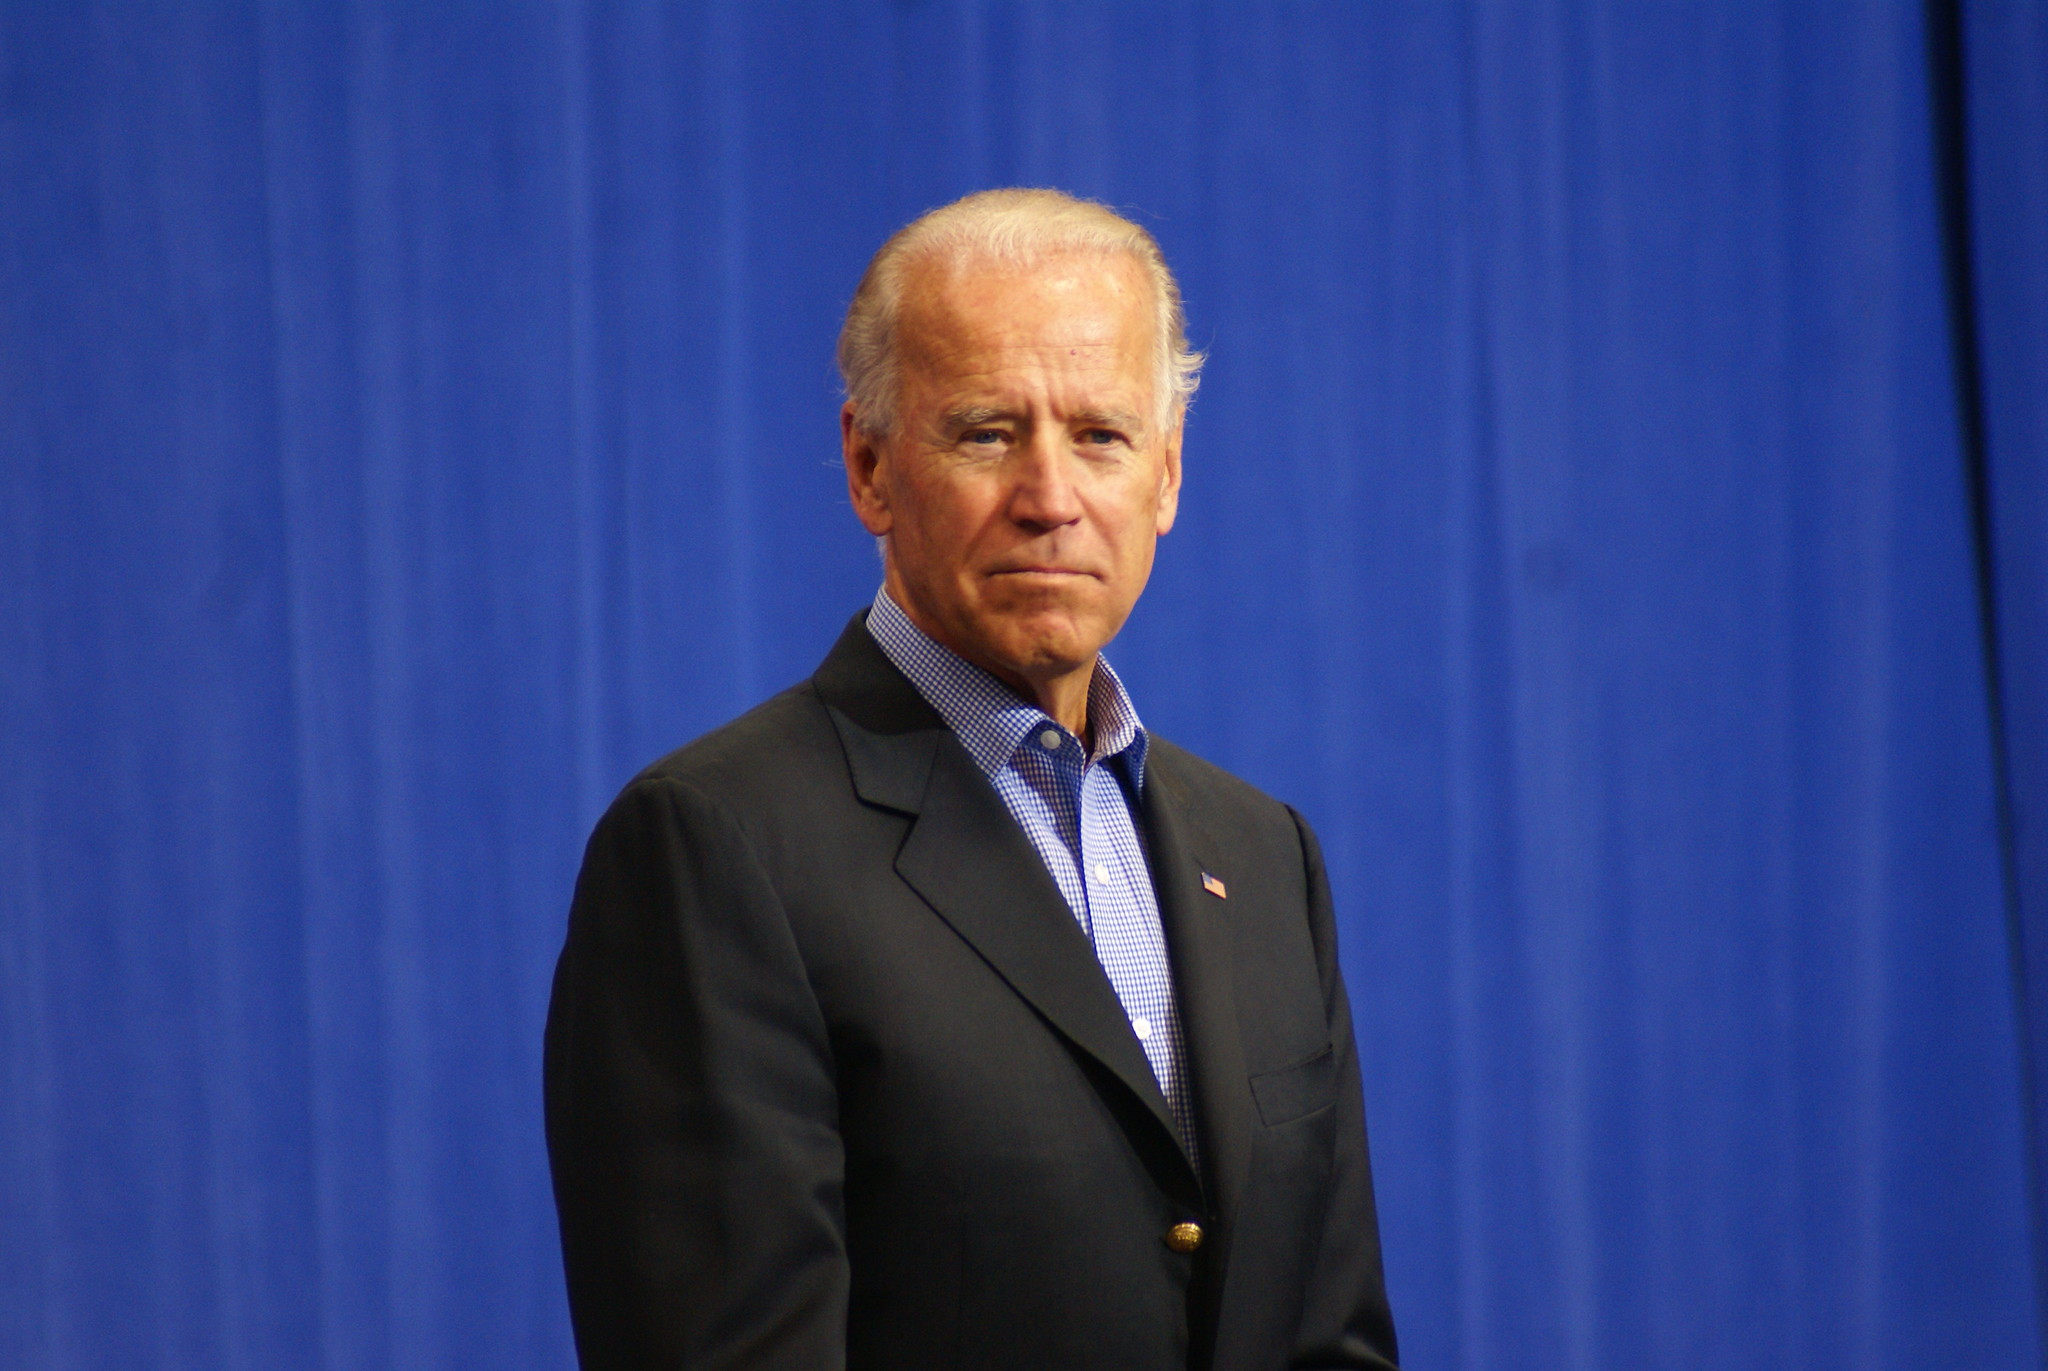 Picture of Joe Biden onstage